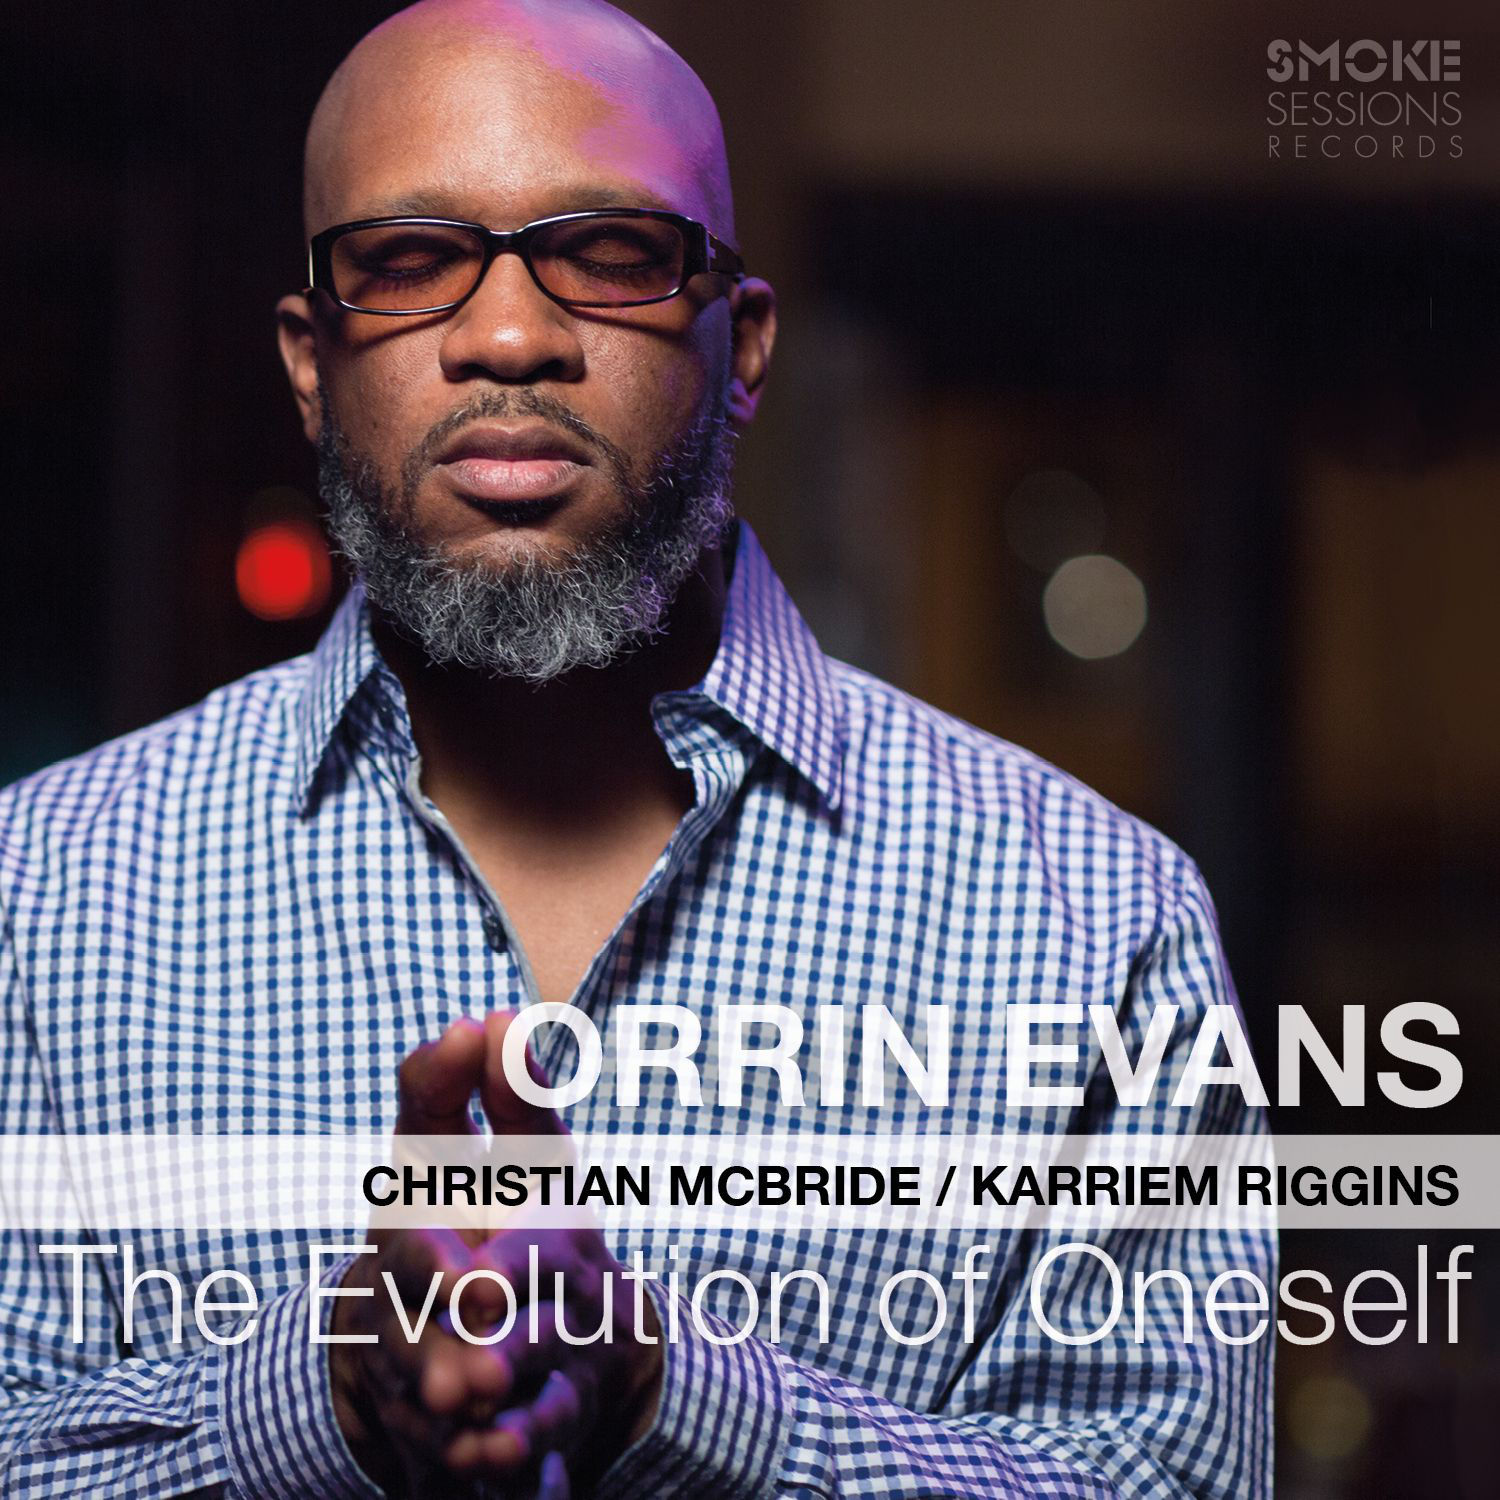 ALBUM: EVOLUTION OF ONESELF    LABEL: SMOKE SESSIONS RECORDS    RELEASE DATE: SEPTEMBER 4TH, 2015    Orrin Evans- piano, Christian McBride- bass, Karriem Riggins- drums.